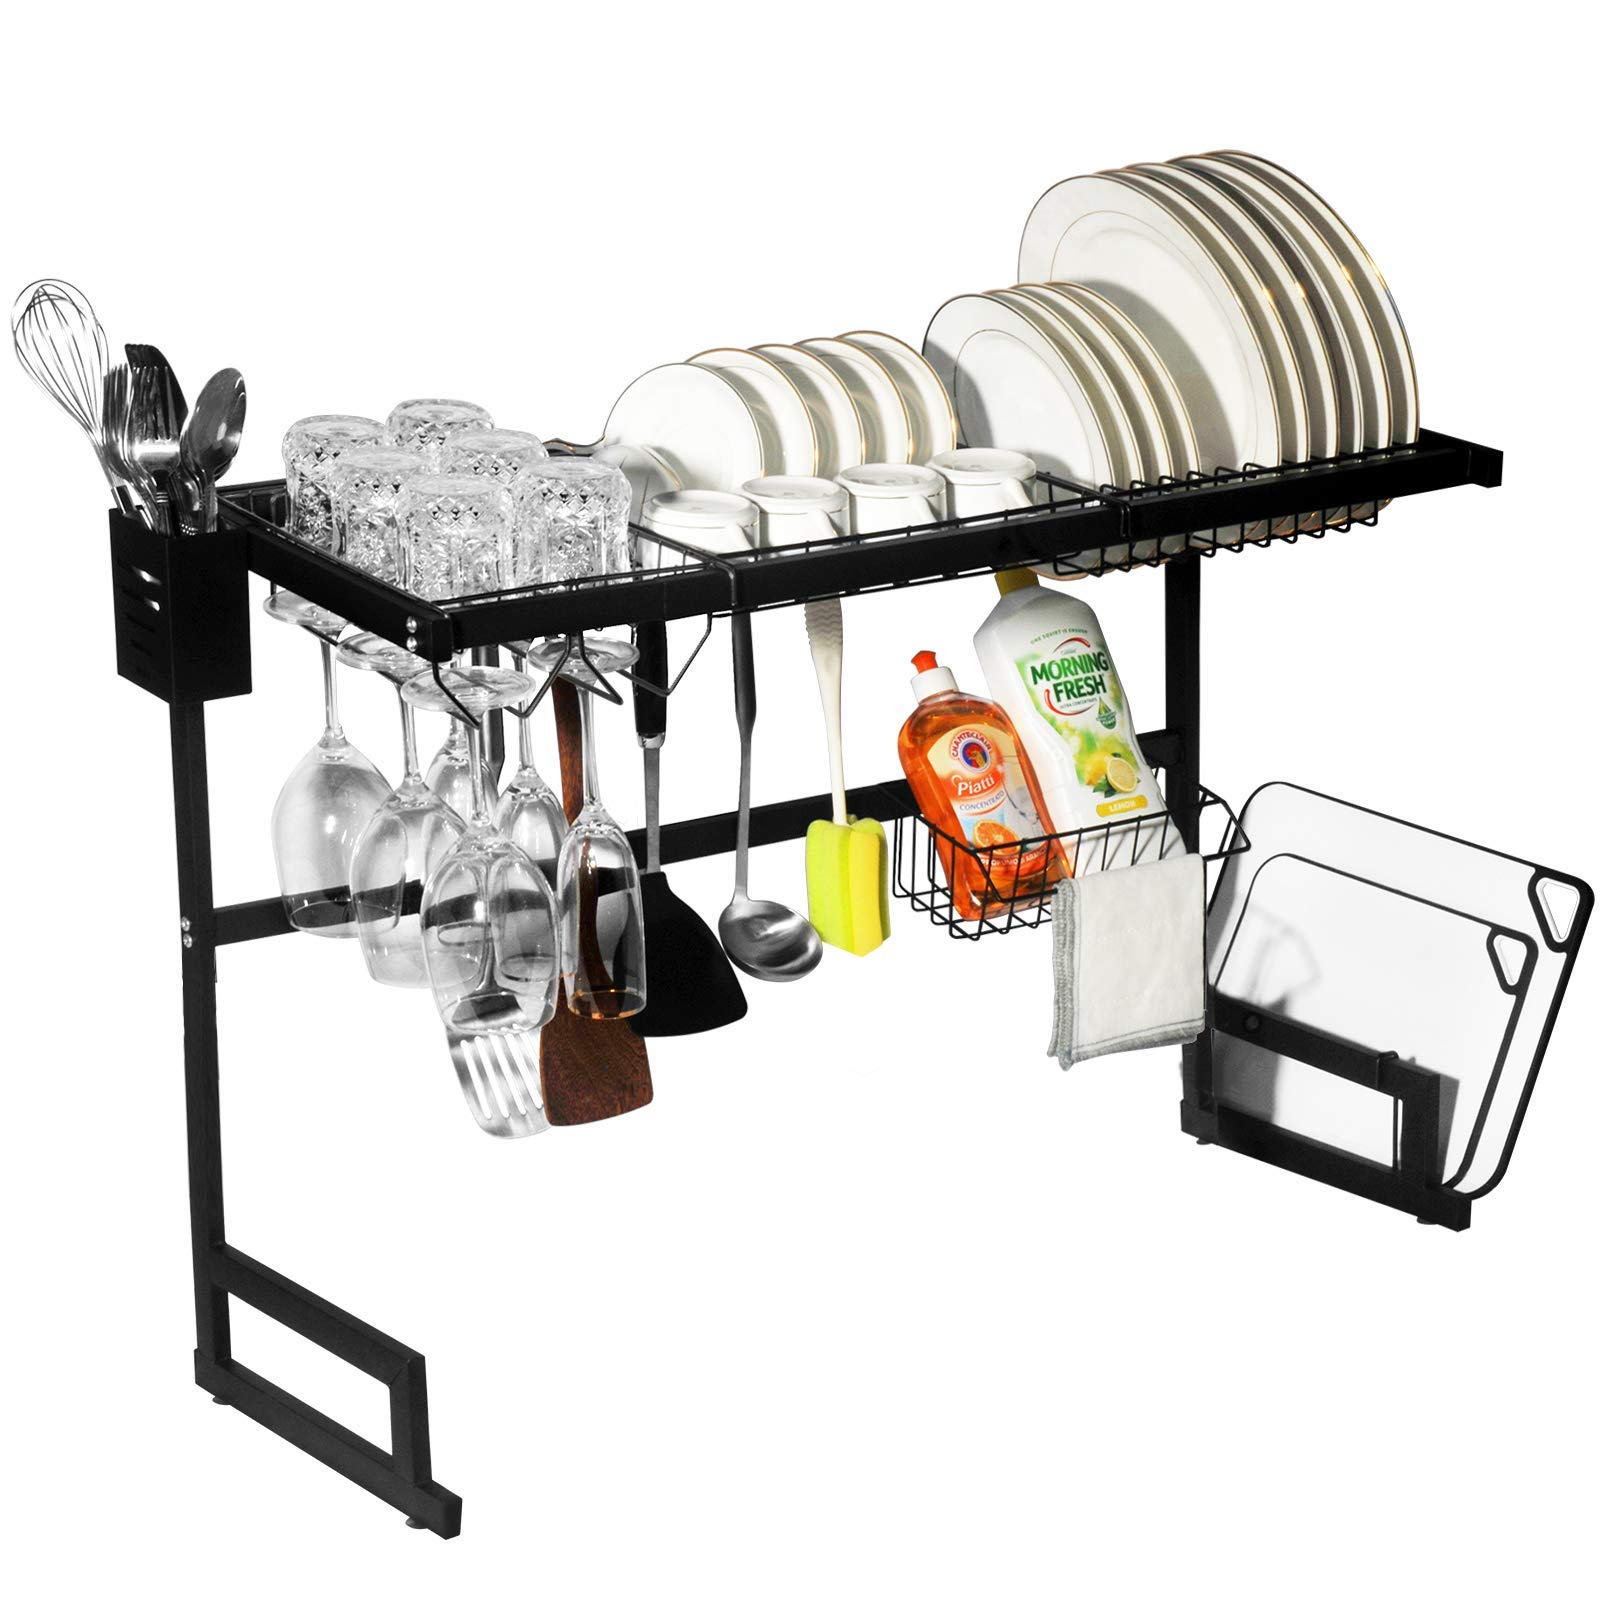 "Dish Drying Rack Over The Sink, Adjustable 25""- 33"" Dish Racks Shelf Organizer on The Sink Counter, Dish Organizer Racks for Kitchen Organization and Storage Shelf Dish Drainer, Space Saver Sink Rack"